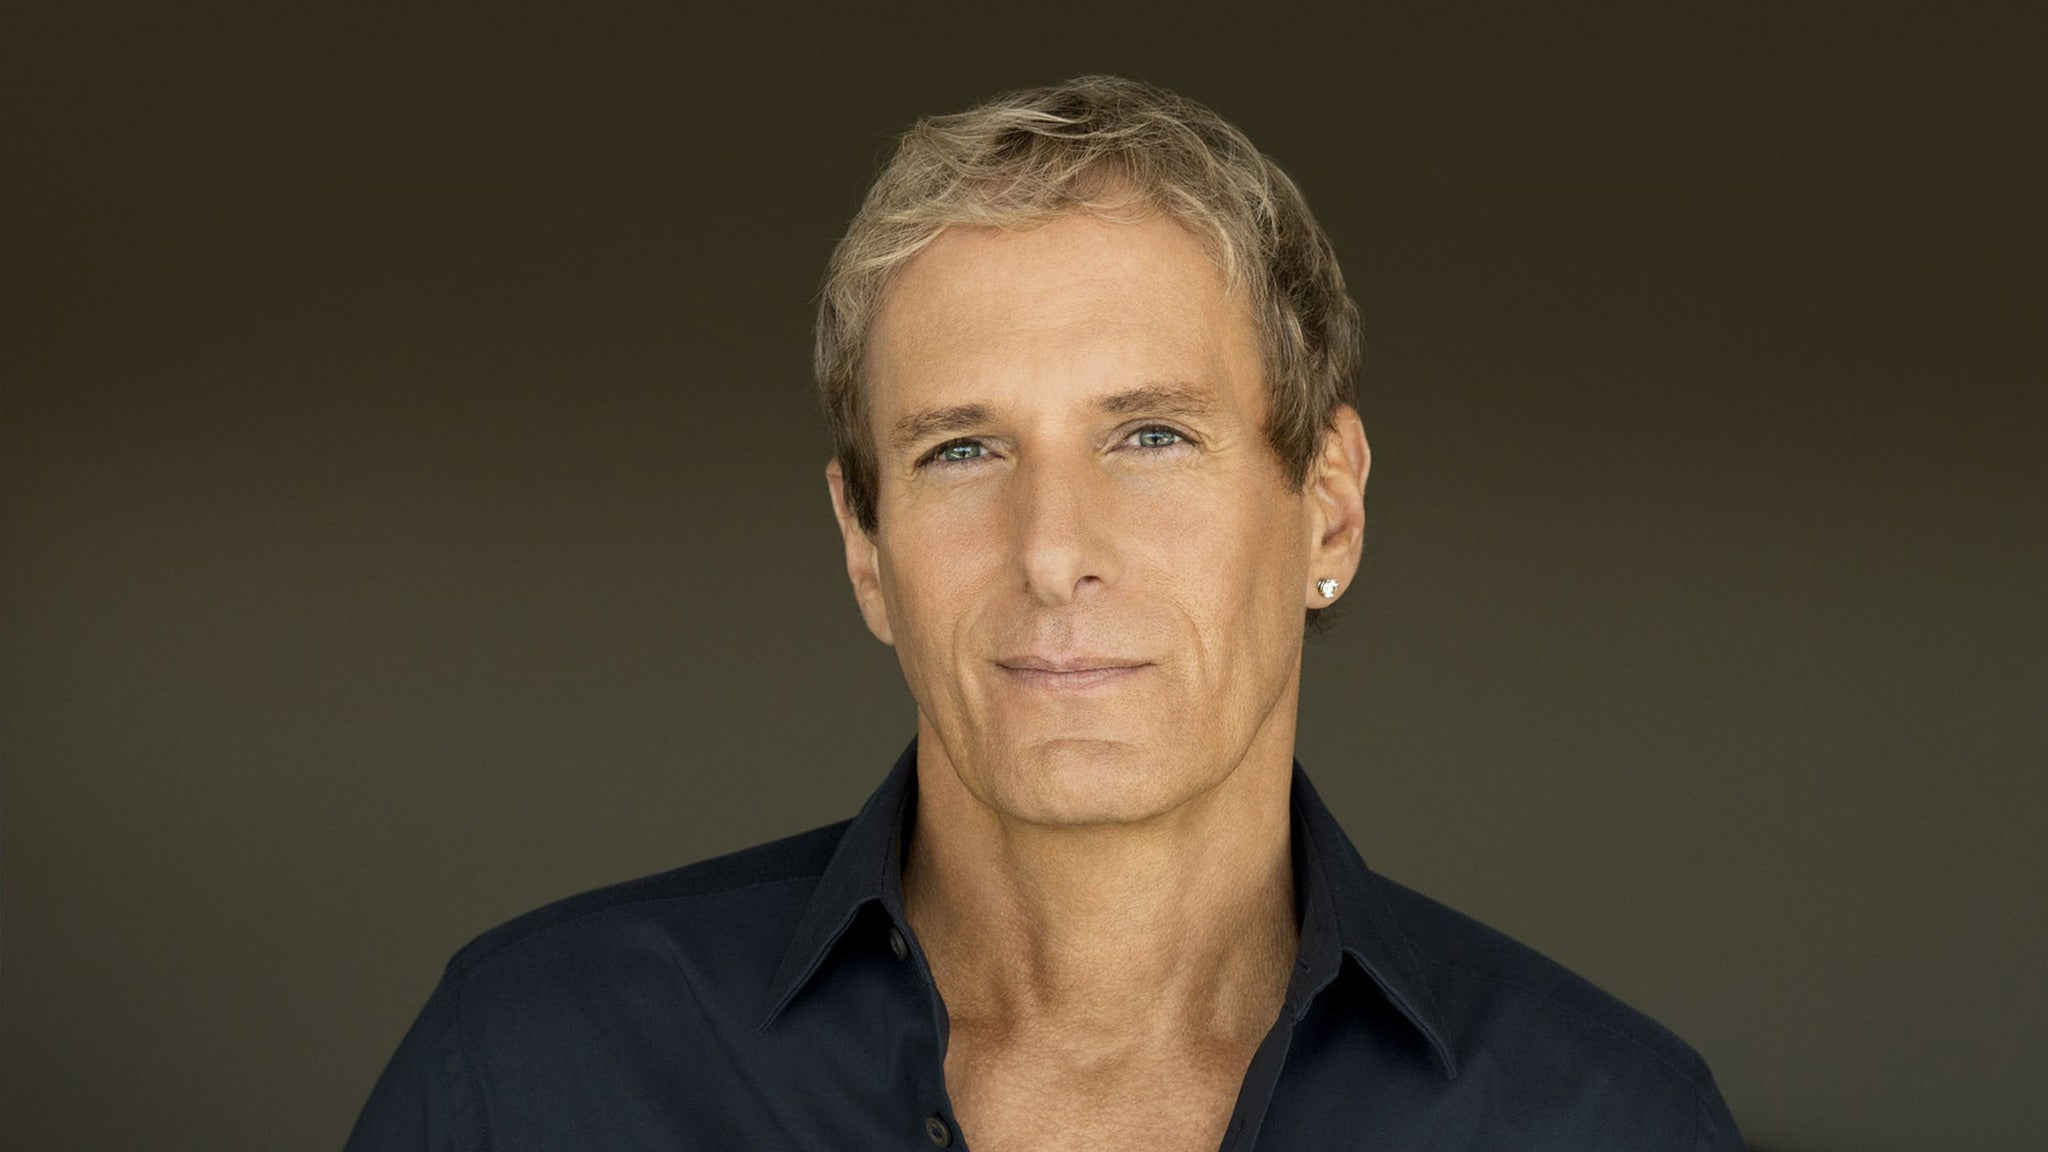 Michael Bolton at Pechanga Resort and Casino